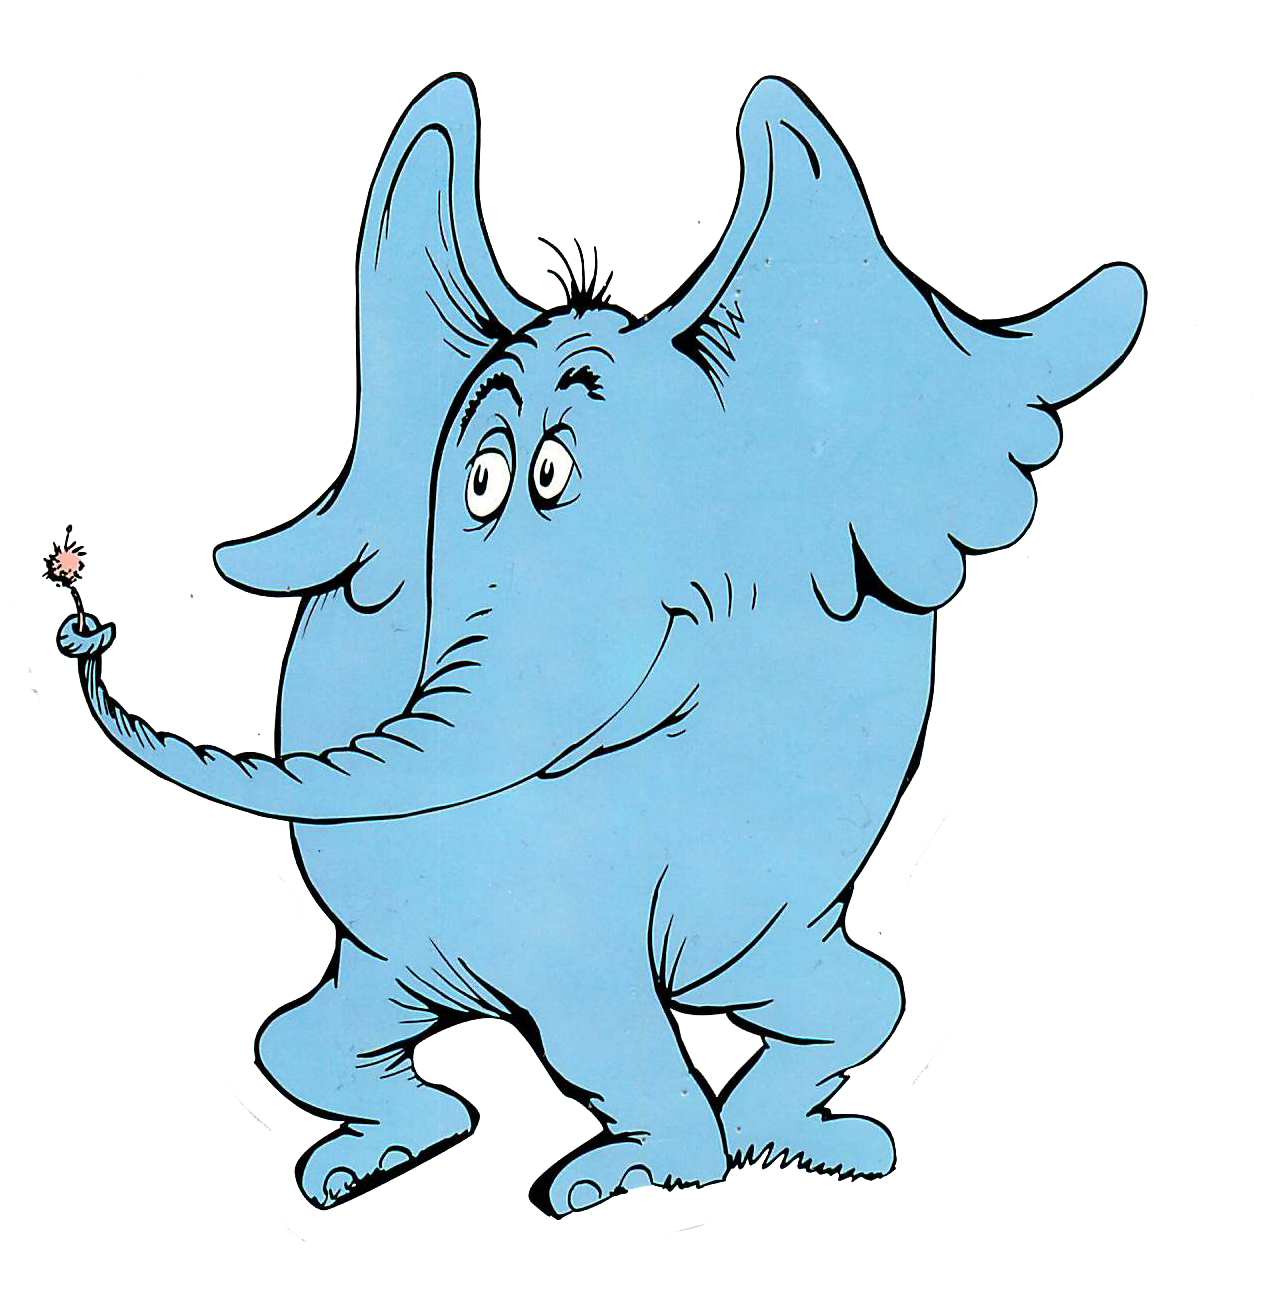 Free horton cliparts download. Dr seuss clipart cat in hat jpg royalty free stock